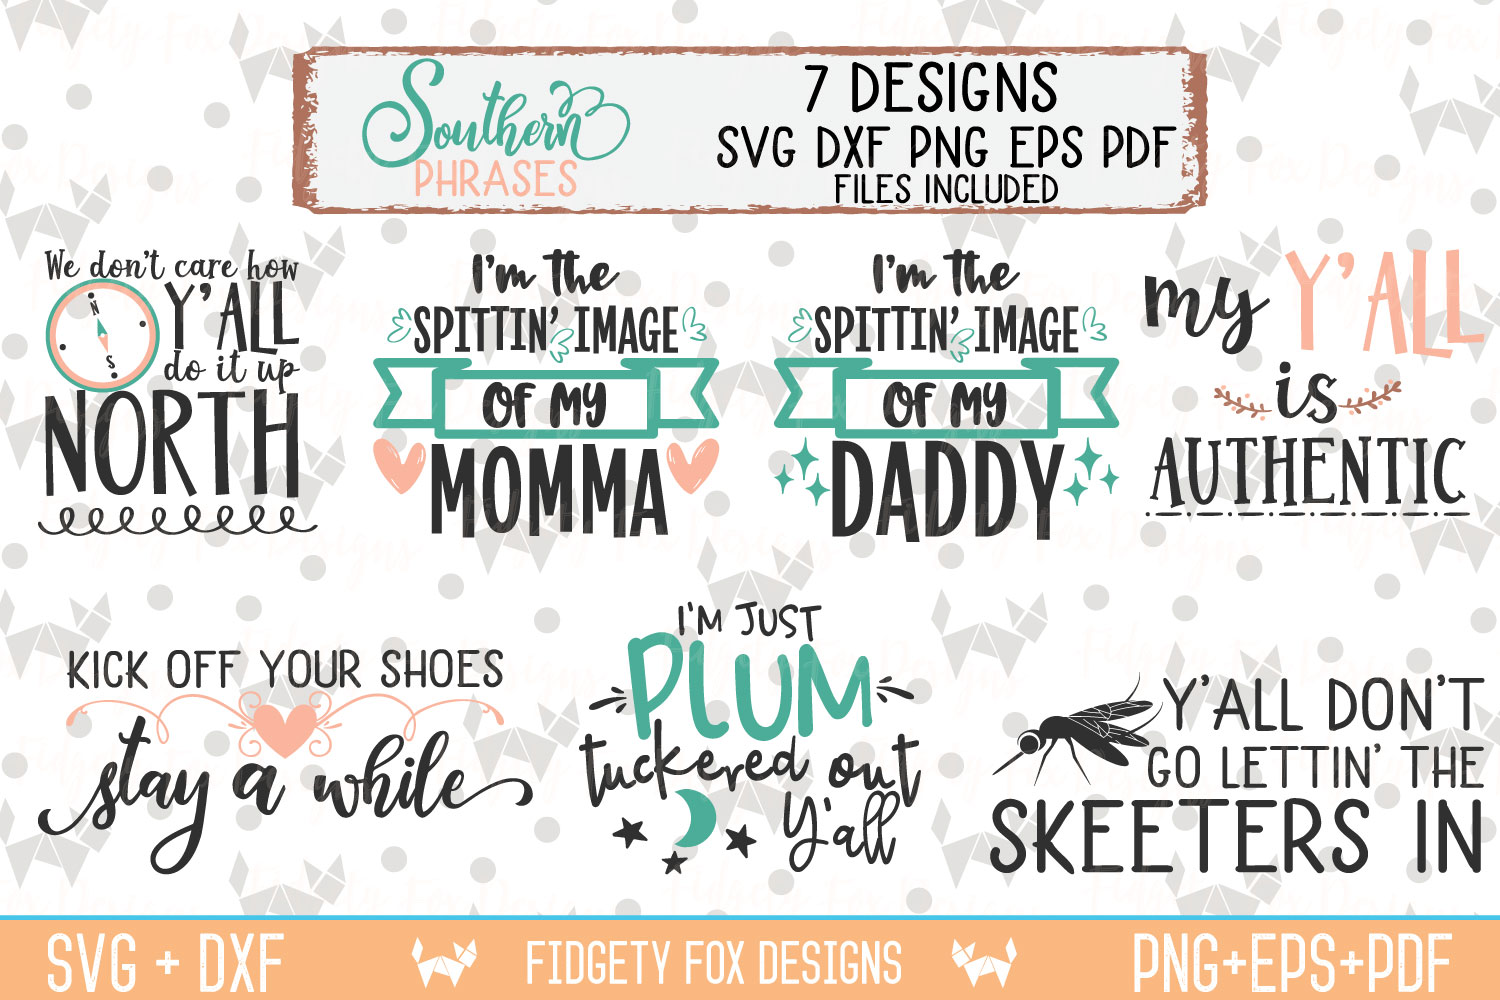 Southern Phrases Svg Bundle DXF PNG EPS PDF Rustic Design example image 1